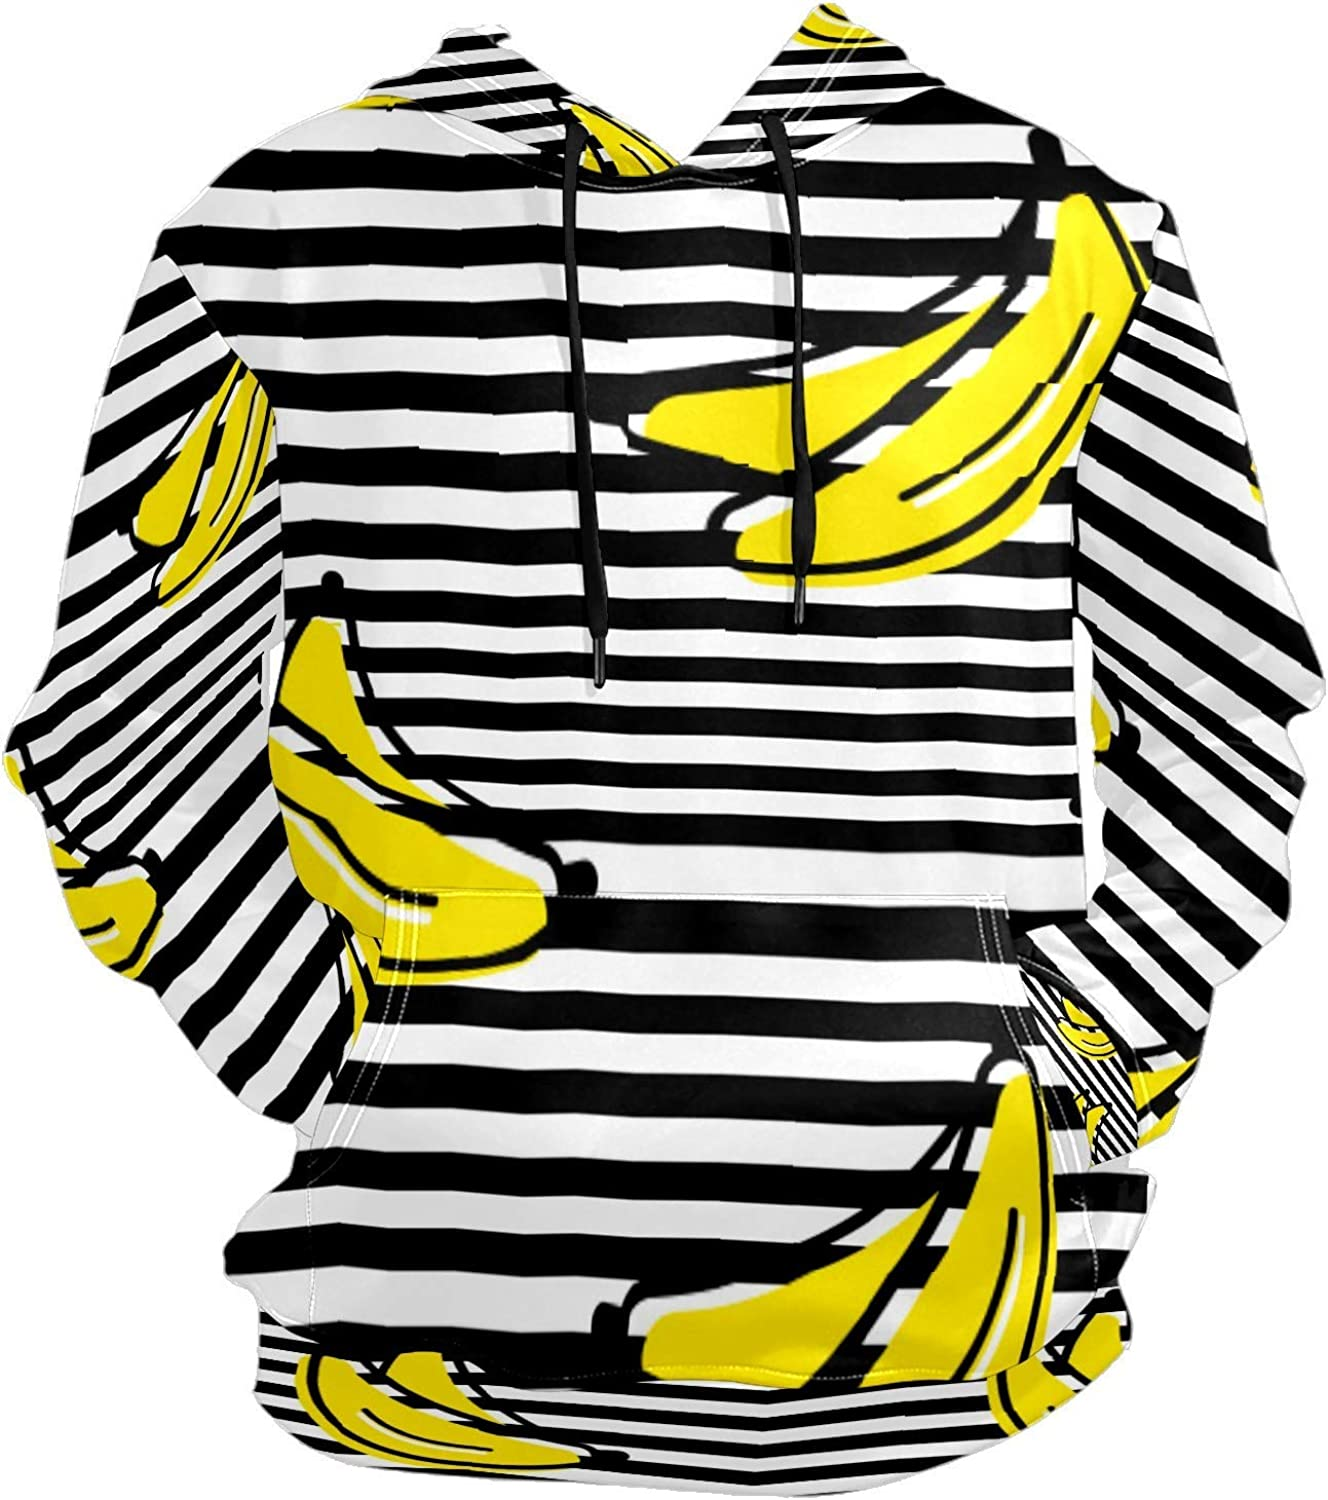 Men's Sport Hoodie Banana Fruit Black And White Stripes Big and Tall Hoodies for Men Women Oversized Hooded Sweatshirt Hip Hop Pullover Hoodie Midweight Hood for Boys Girls